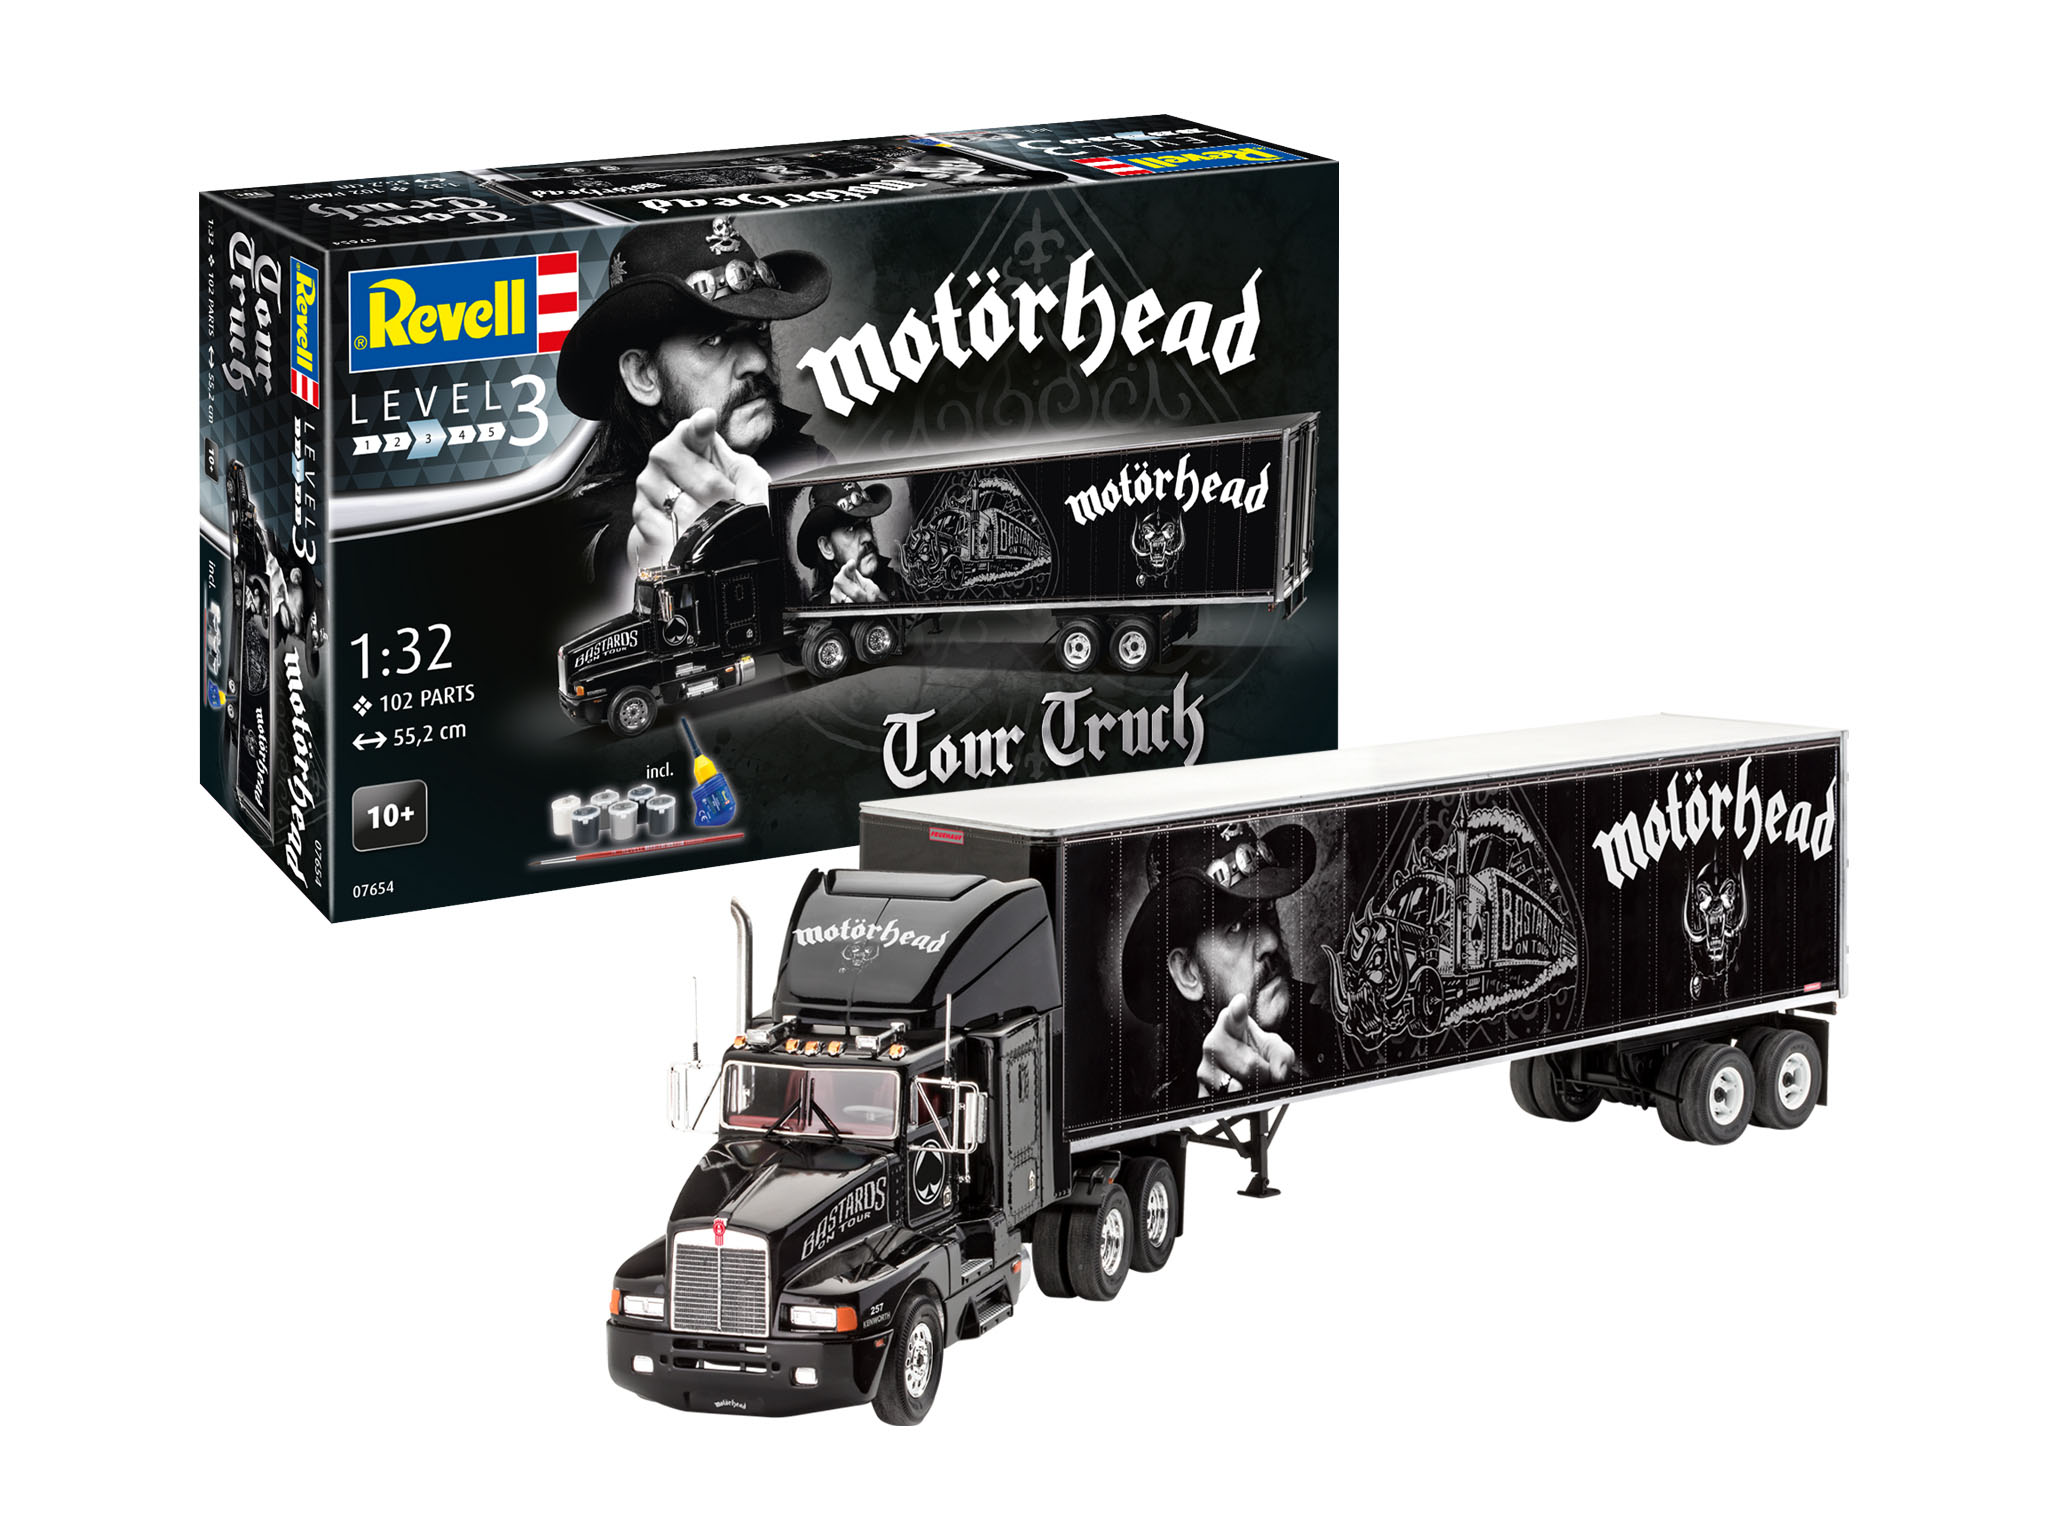 Revell Official Website Of Revell Gmbh Tour Truck Motorhead